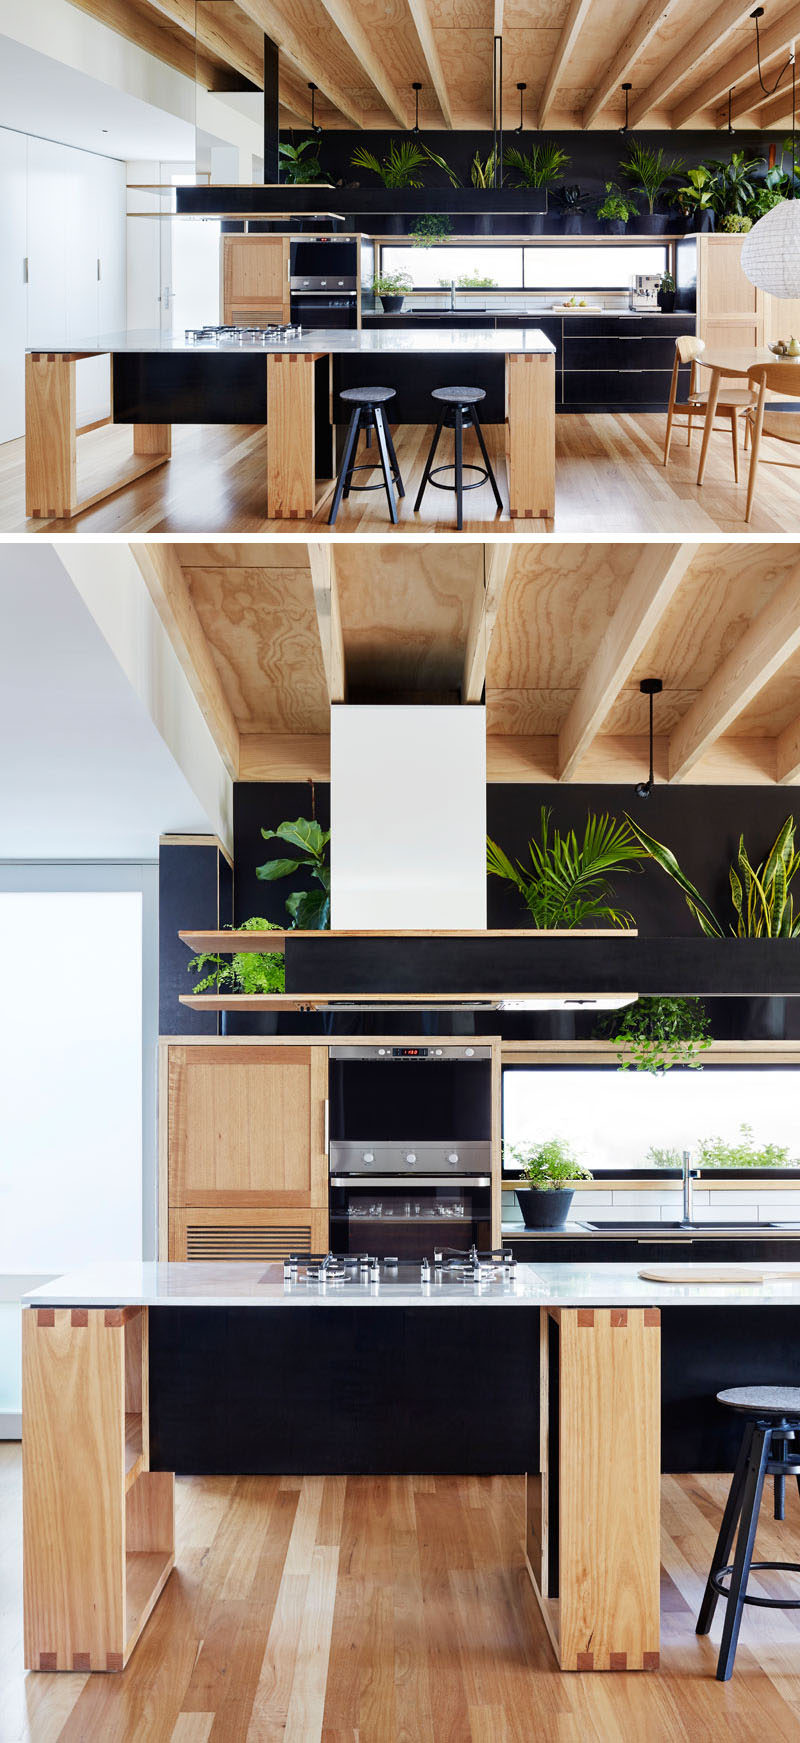 This modern kitchen combines wood and black formply (a type of plywood) drawer fronts. A row of plants sitting above the kitchen and against the wall, add a touch of nature to the space.